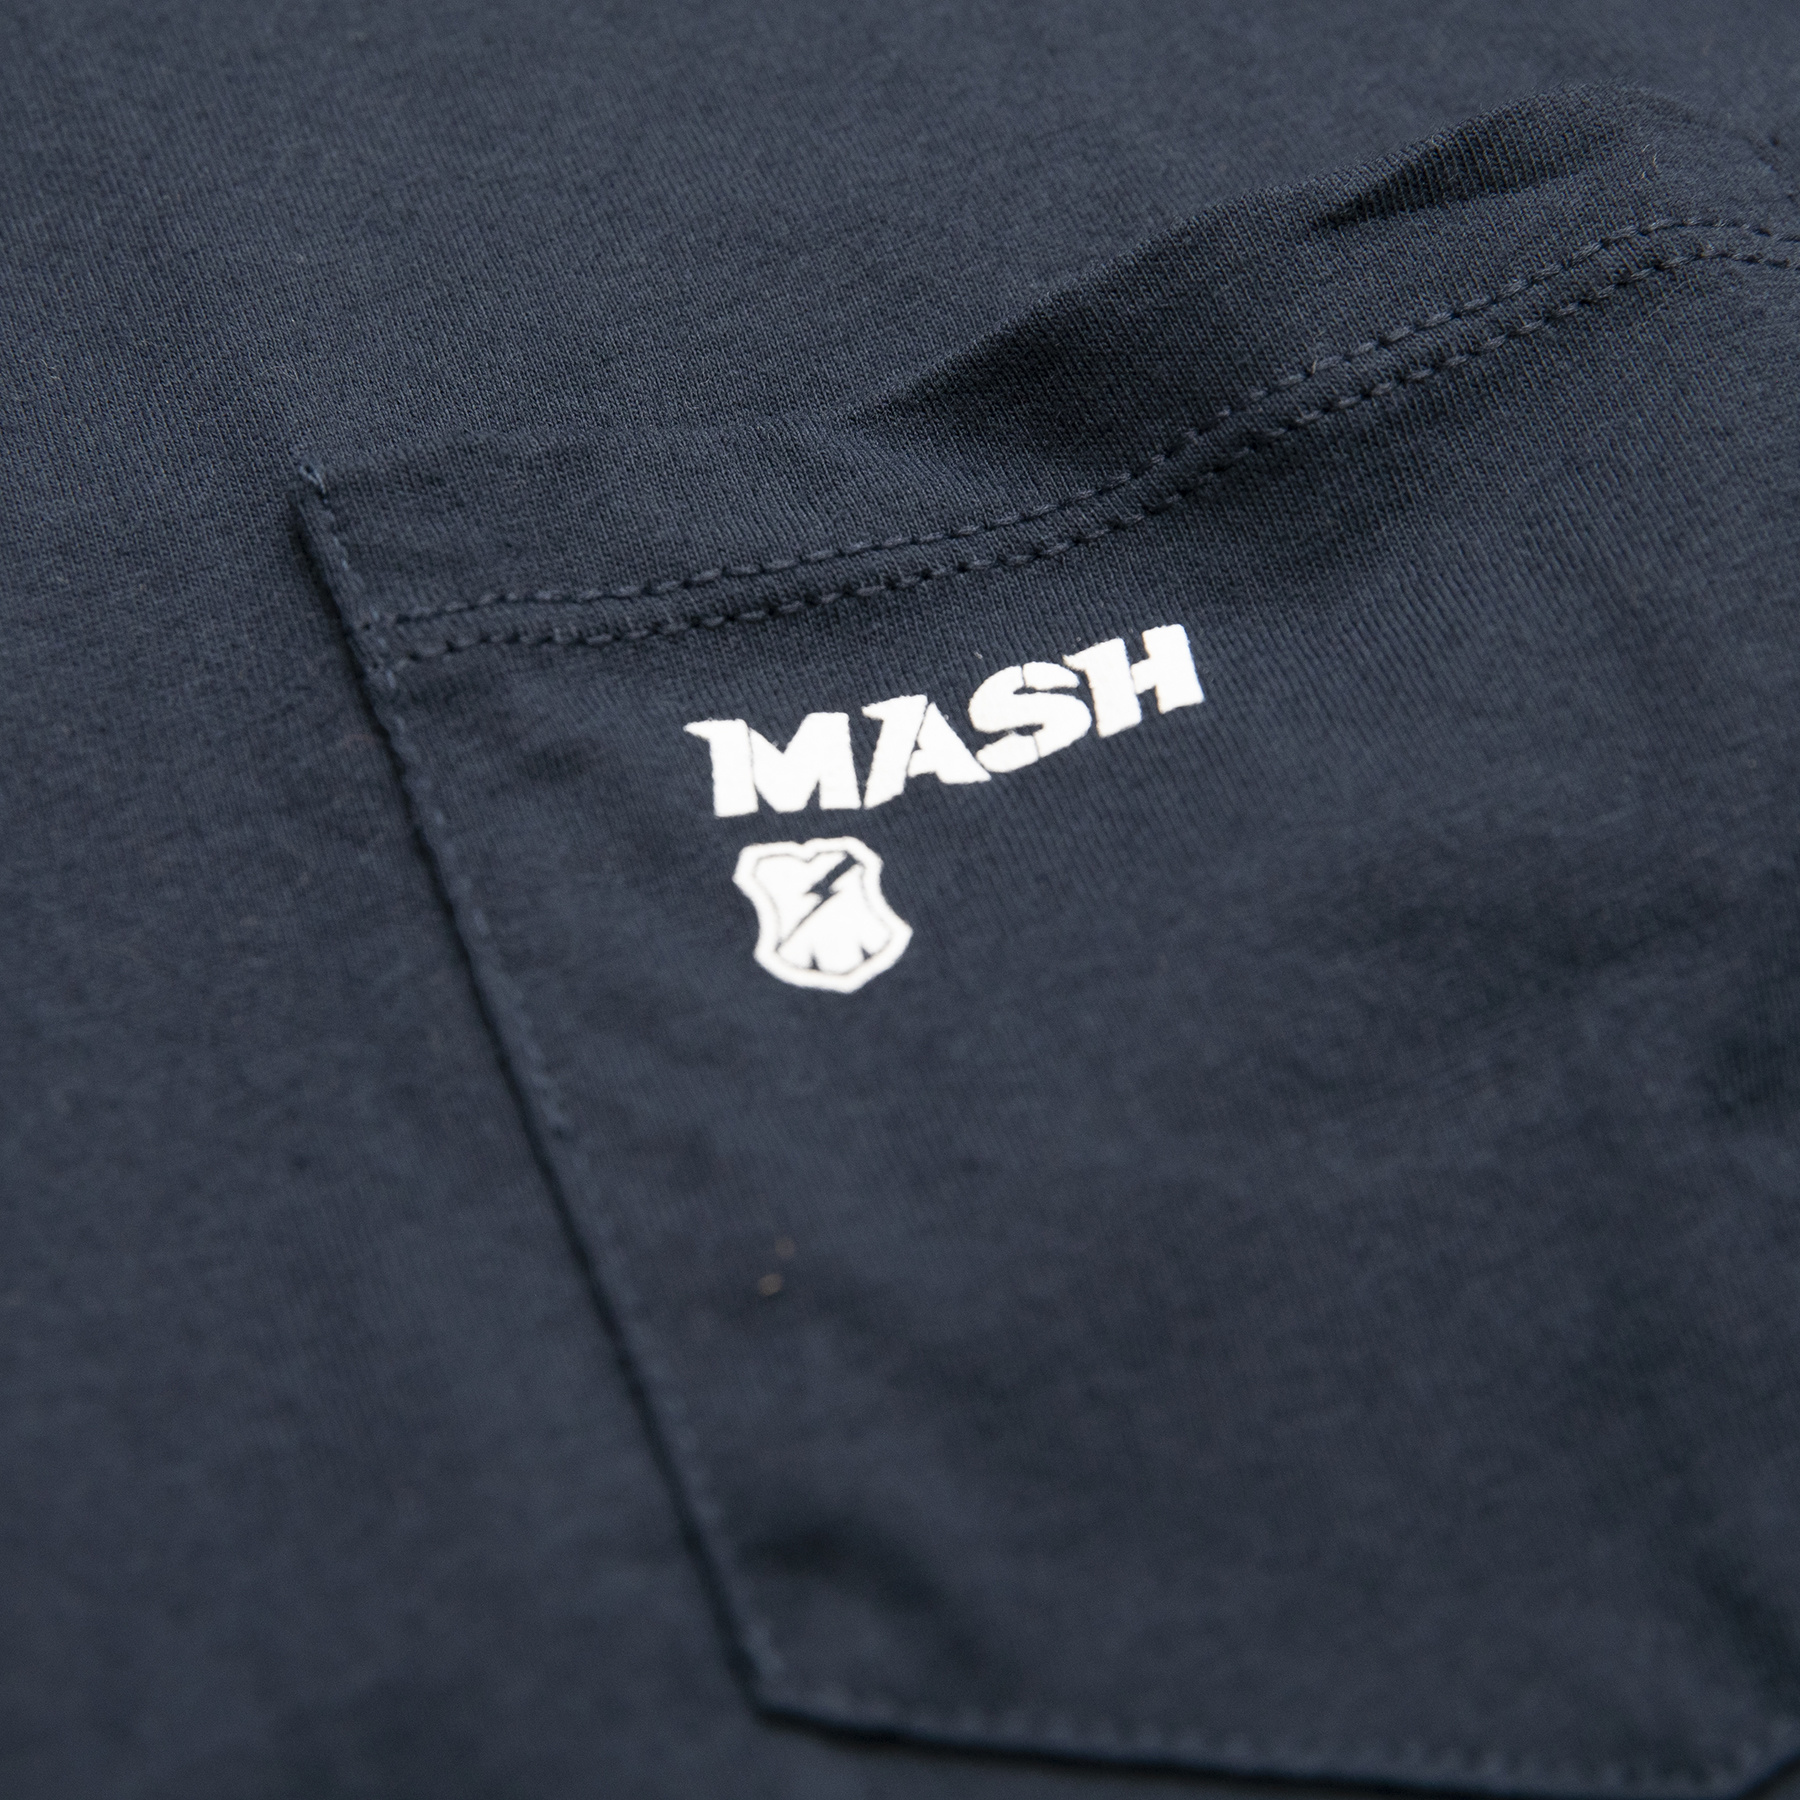 MASH Pocket T-Shirt